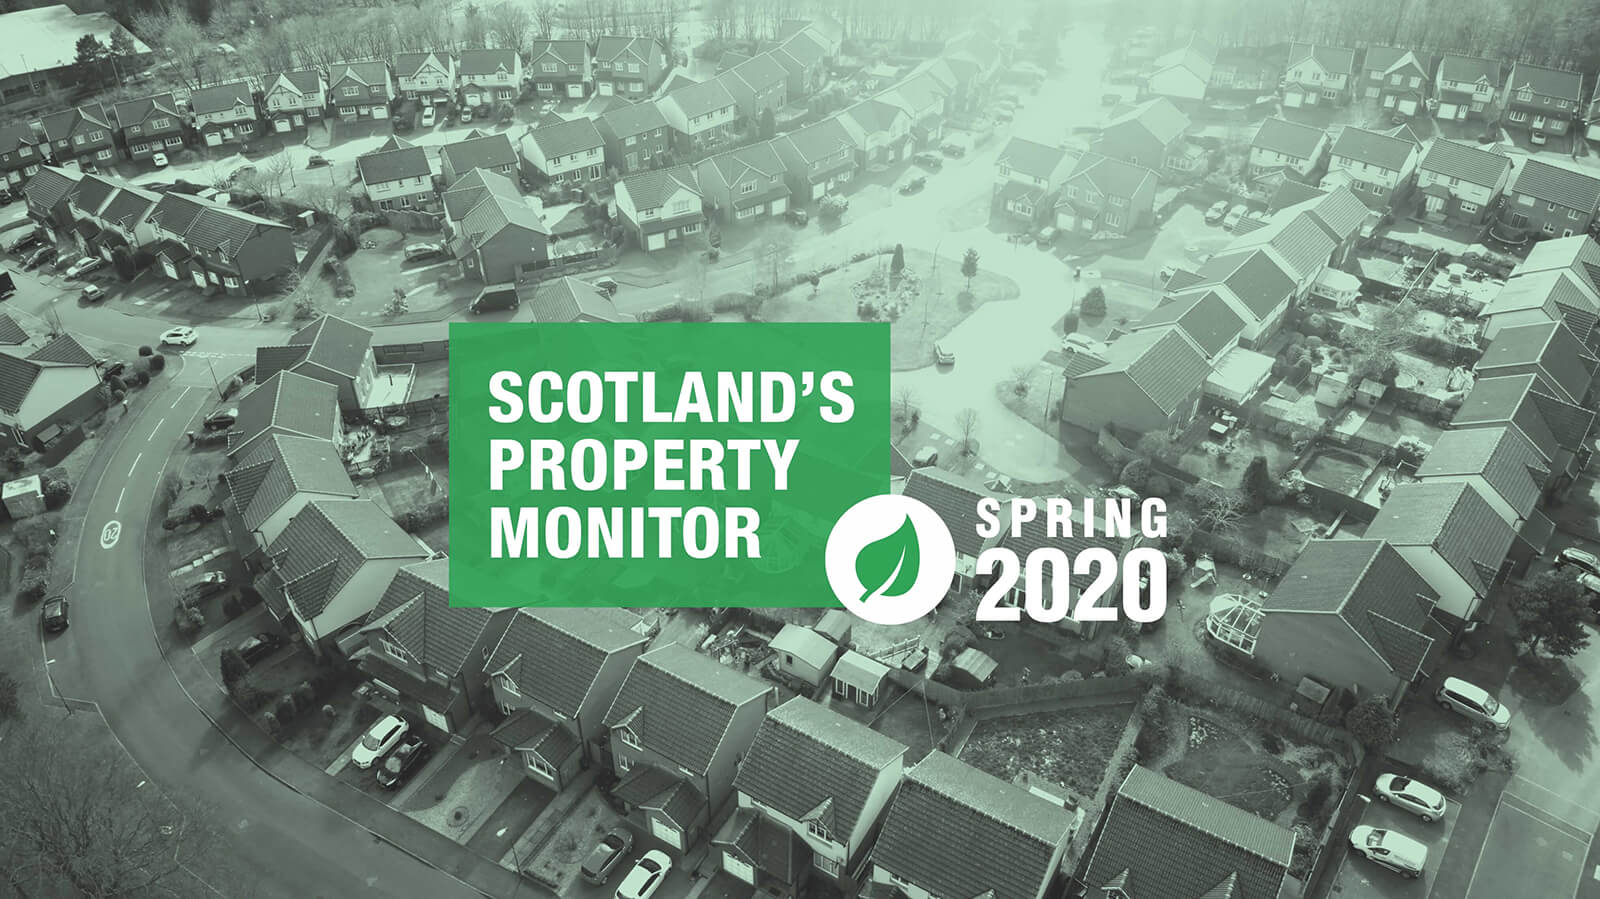 Scots property sales in 'Boris Bounce' after election